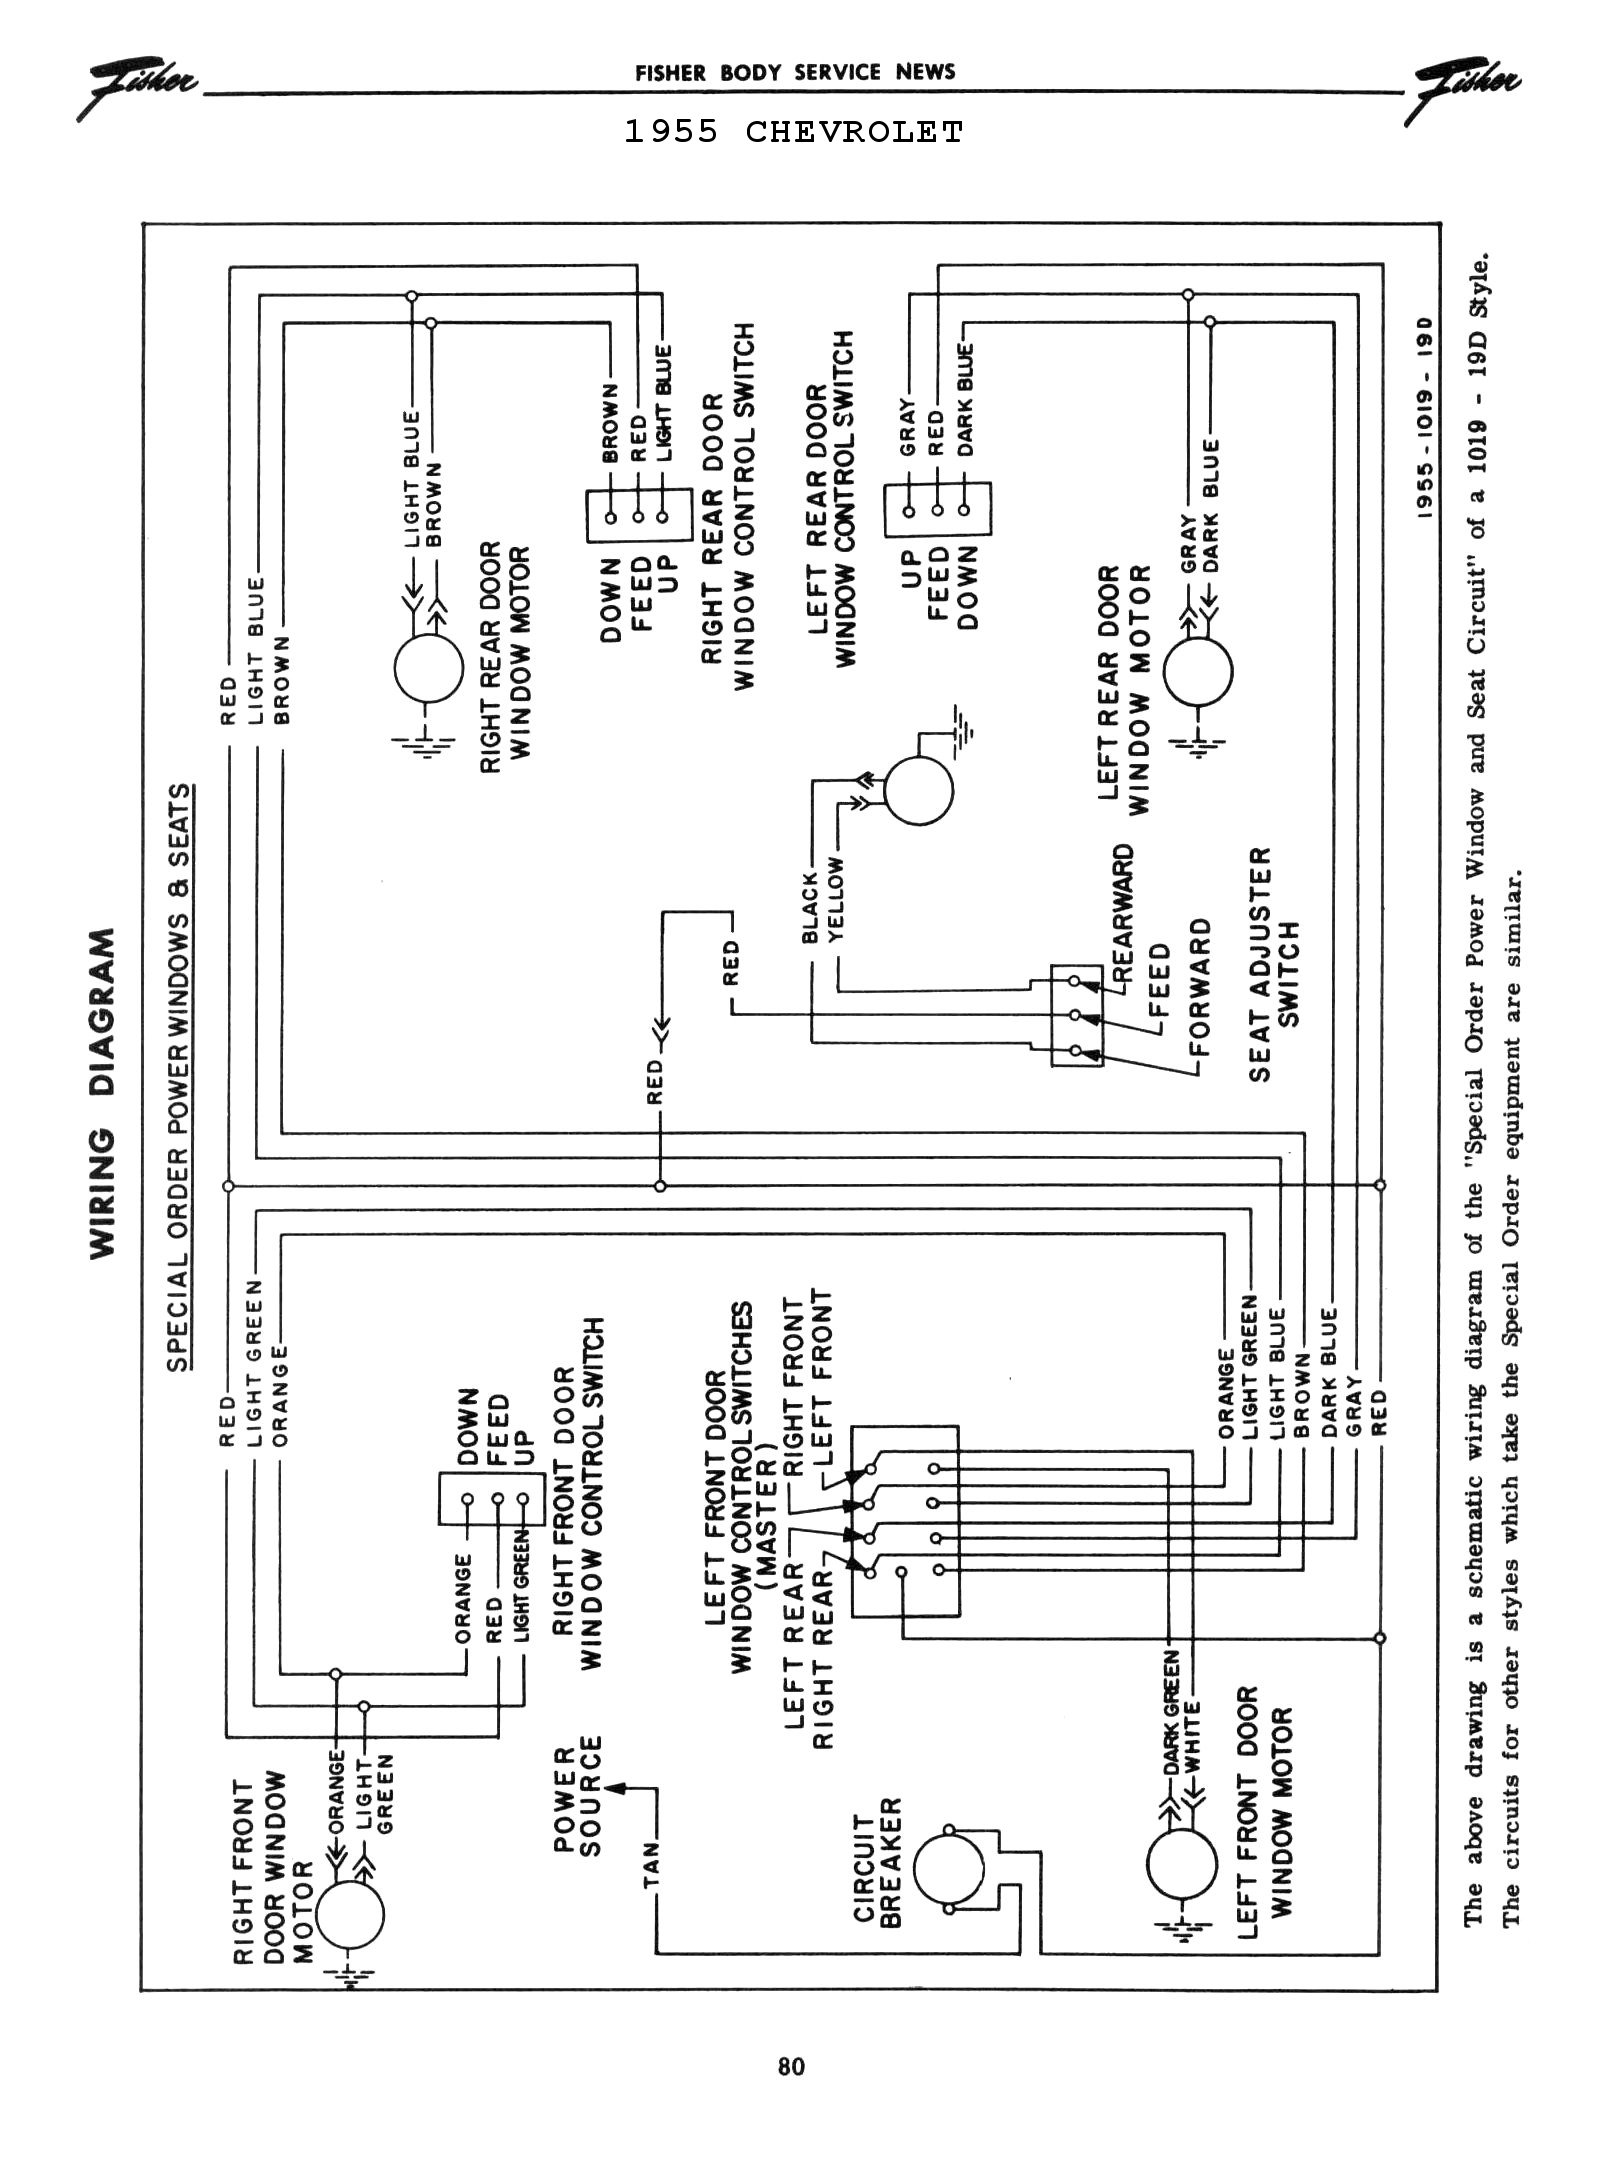 55fsn140180 chevy wiring diagrams master control switch wiring diagram at bakdesigns.co